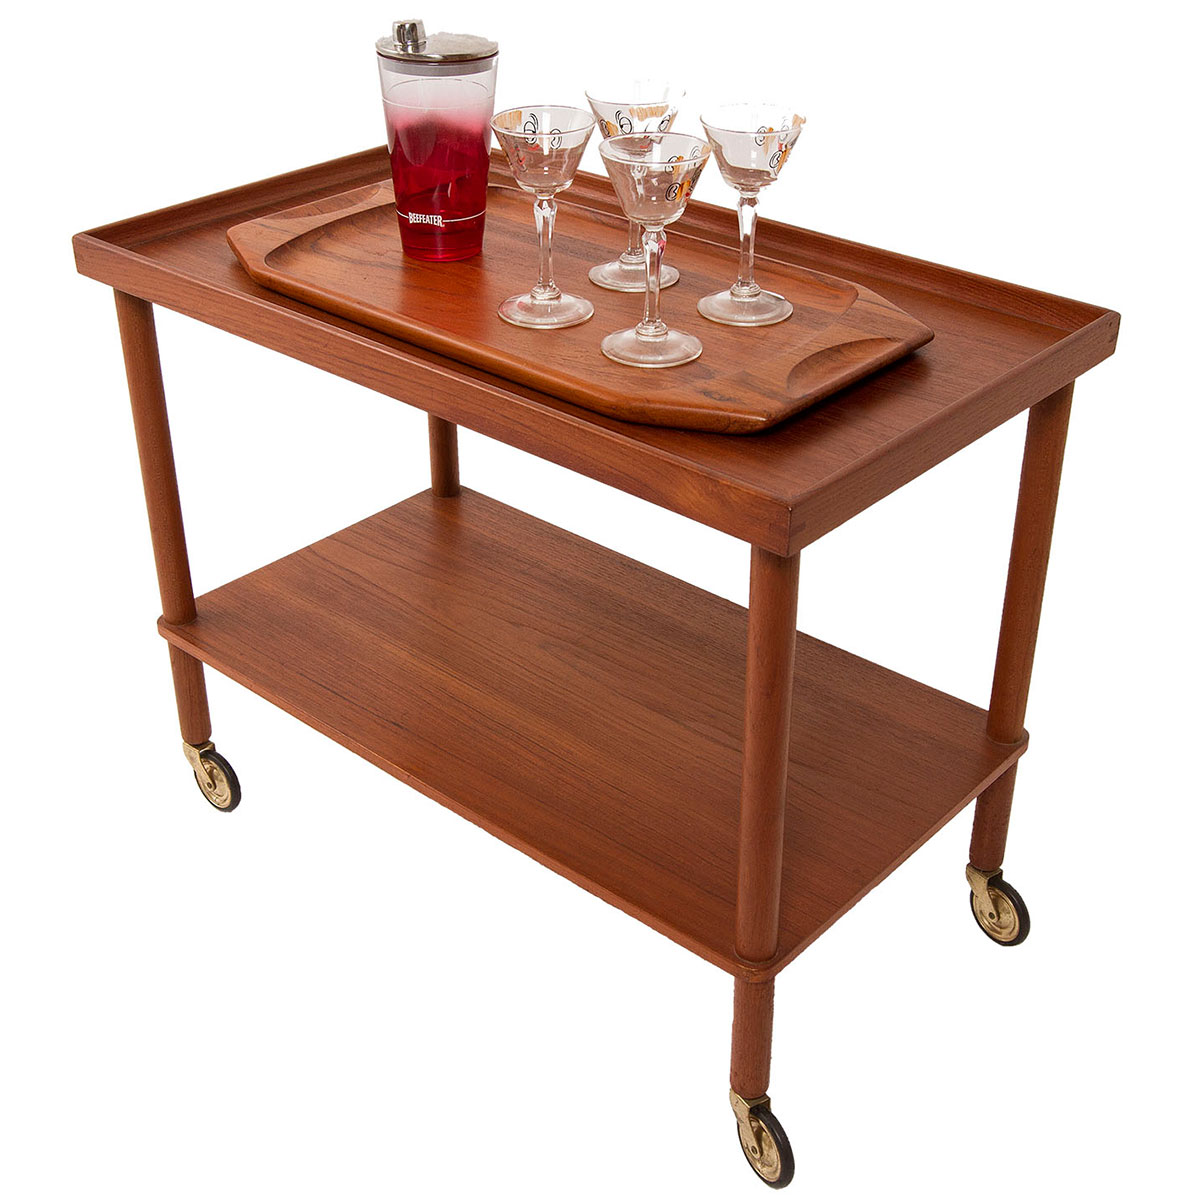 Danish Modern Teak Compact Bar/Serving Cart